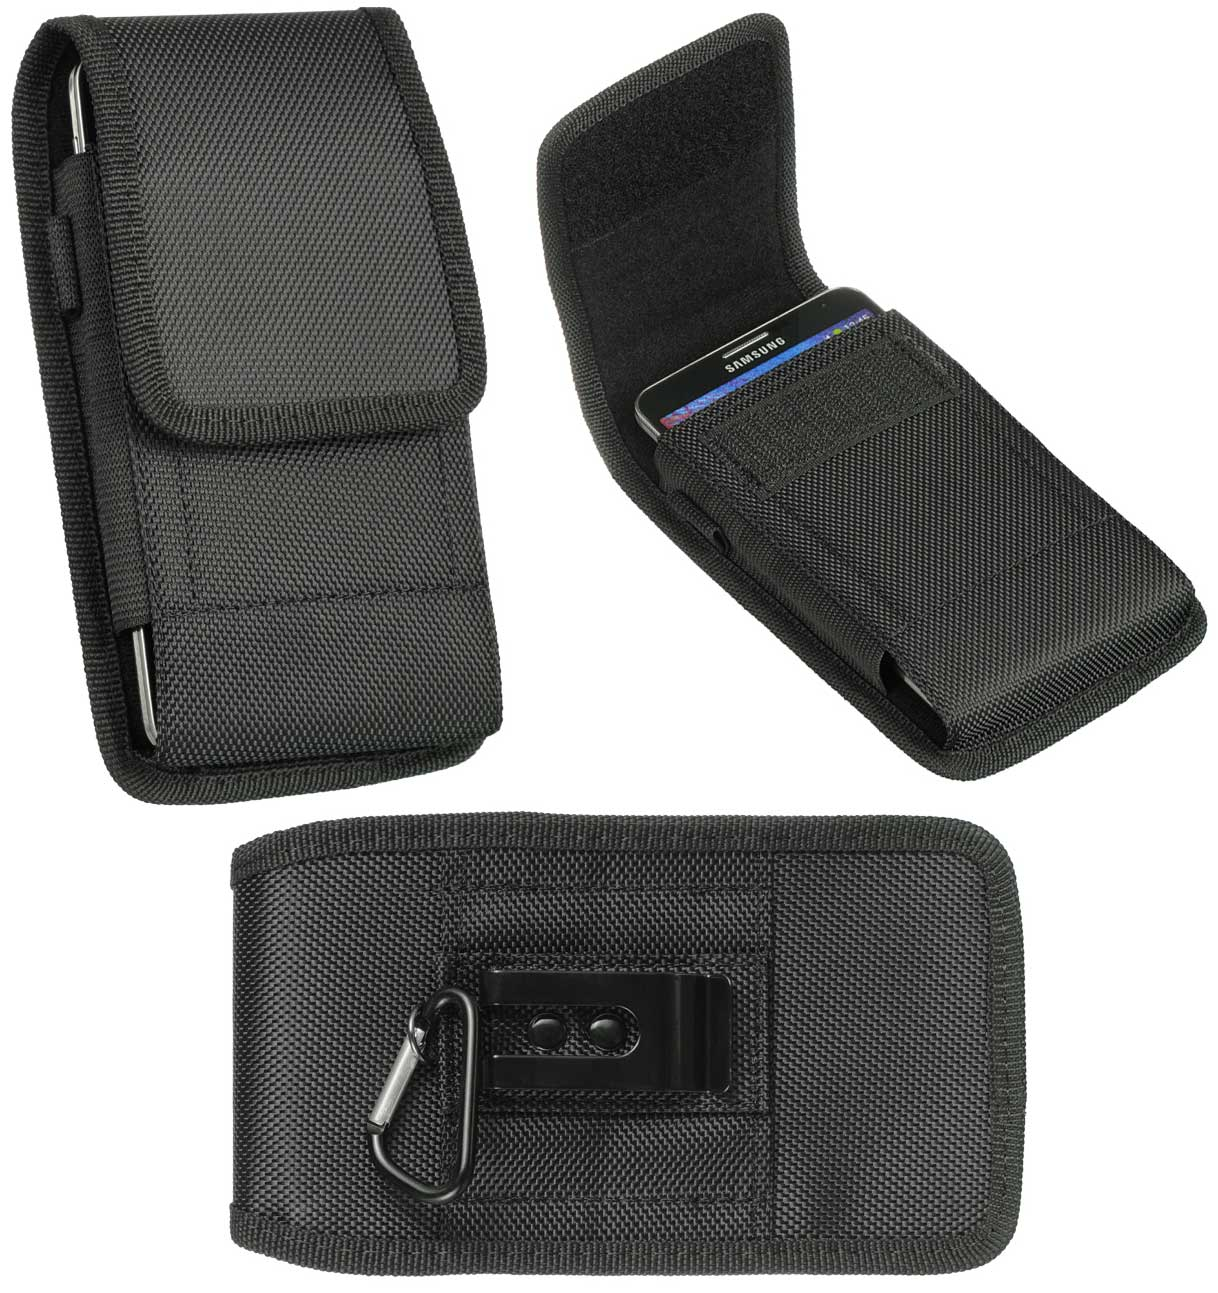 Huawei Union Neoprene Nylon Case Pouch Clip Hook Black